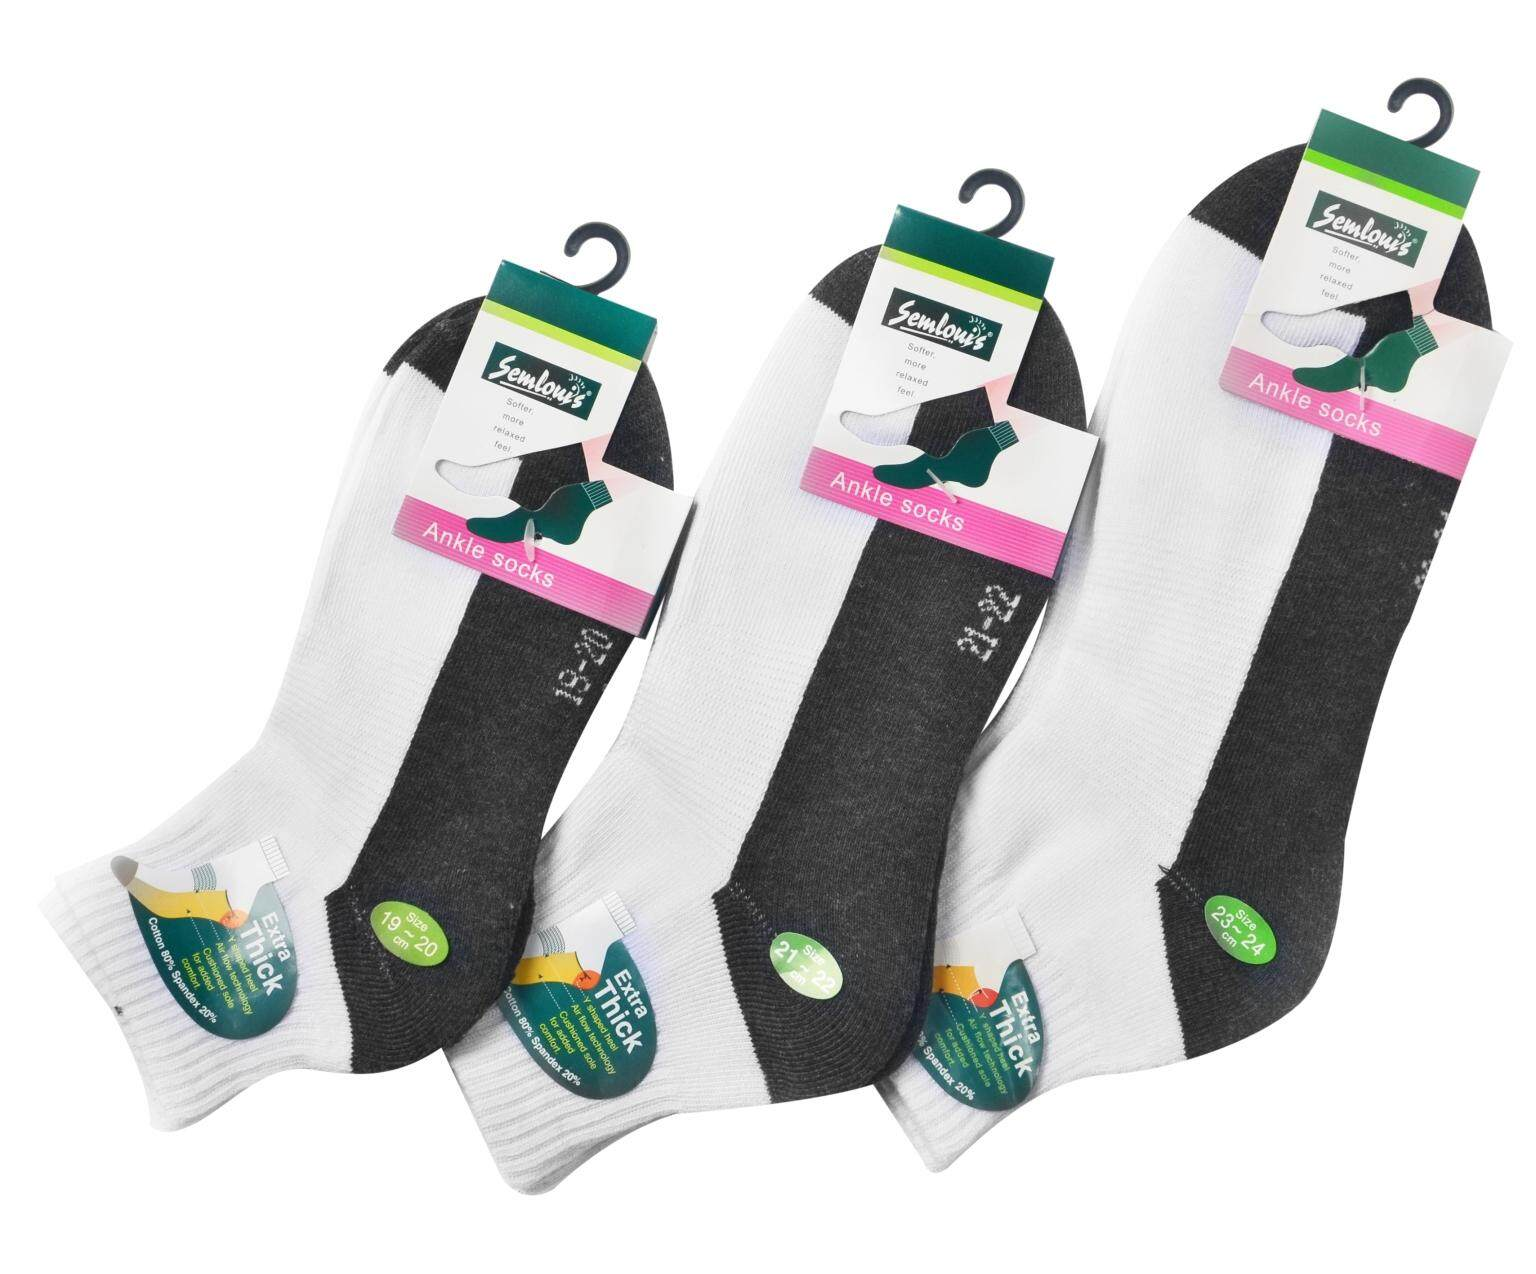 Semlouis Casual Ankle Socks - White with Grey Base